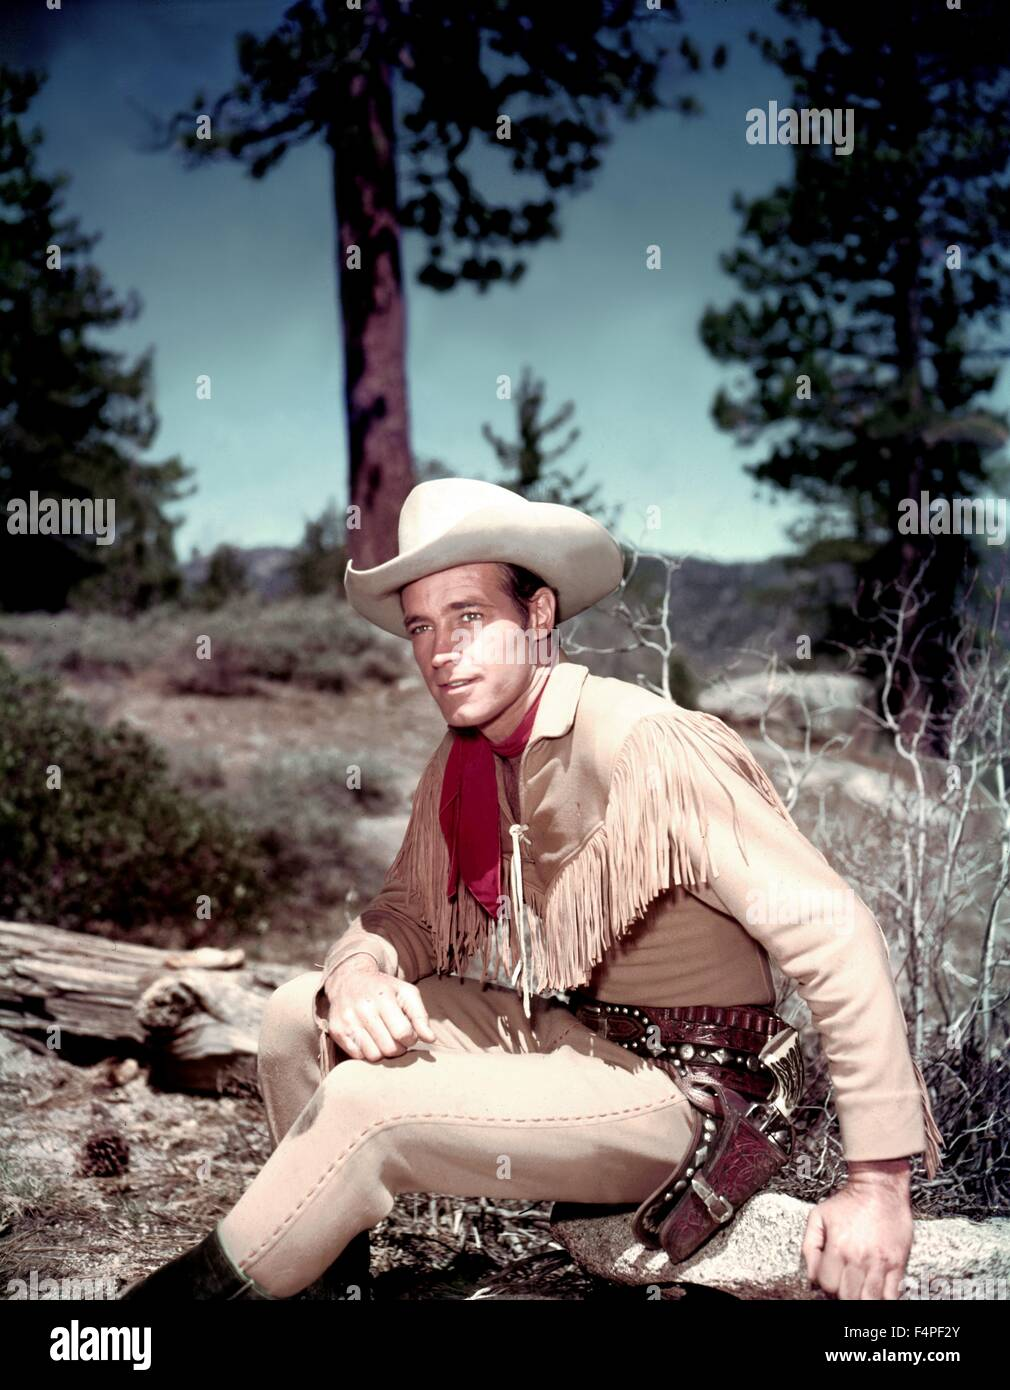 Guy Madison / Avventure di Wild Bill Hickok (Serie TV 1951-1958) / 1958 Immagini Stock